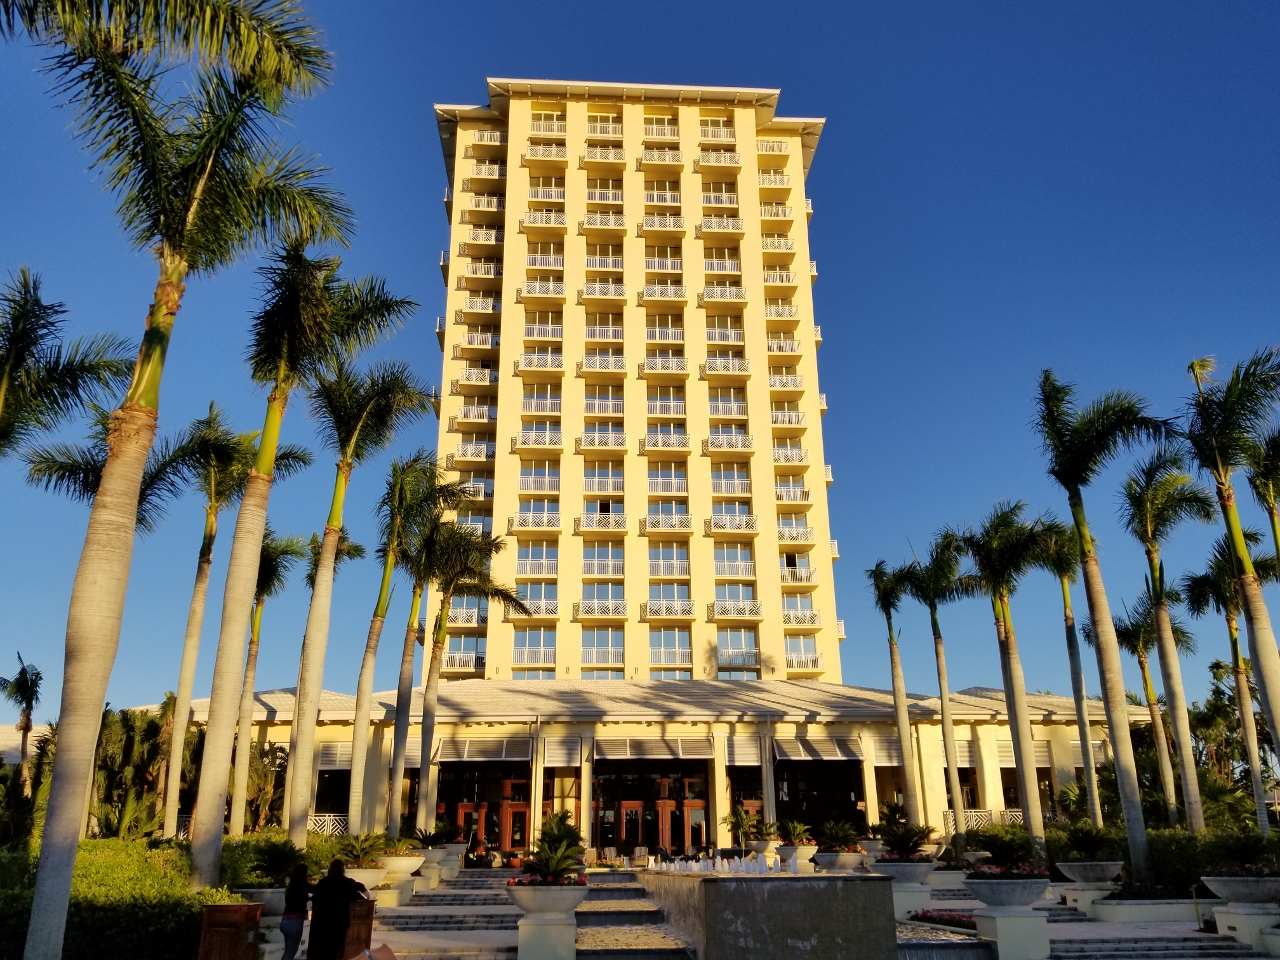 The outside of the Hyatt